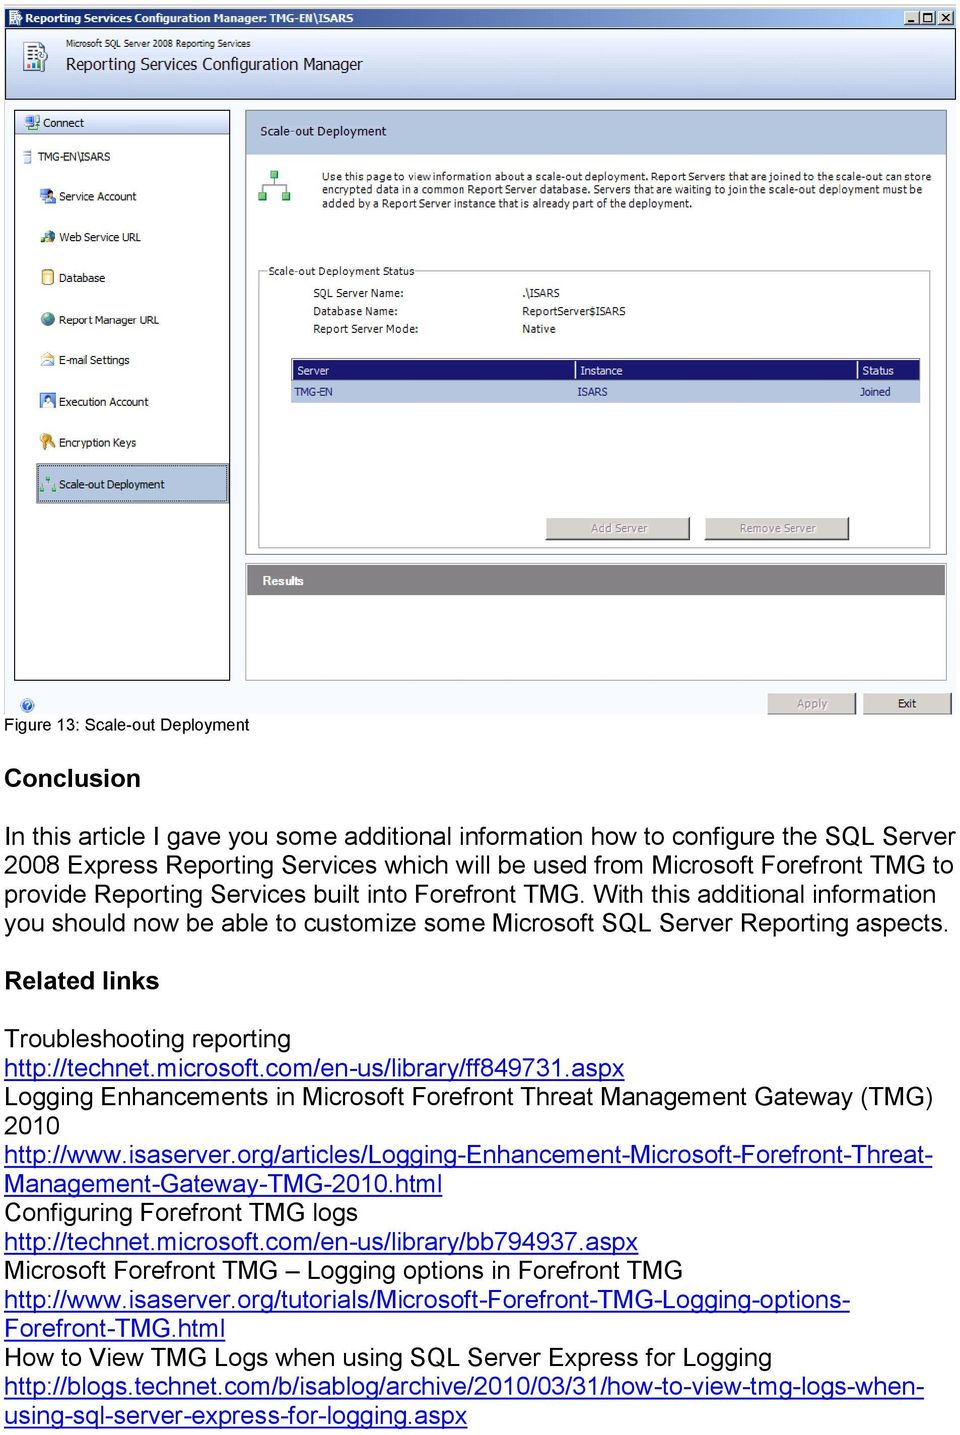 Related links Troubleshooting reporting http://technet.microsoft.com/en-us/library/ff849731.aspx Logging Enhancements in Microsoft Forefront Threat Management Gateway (TMG) 2010 http://www.isaserver.